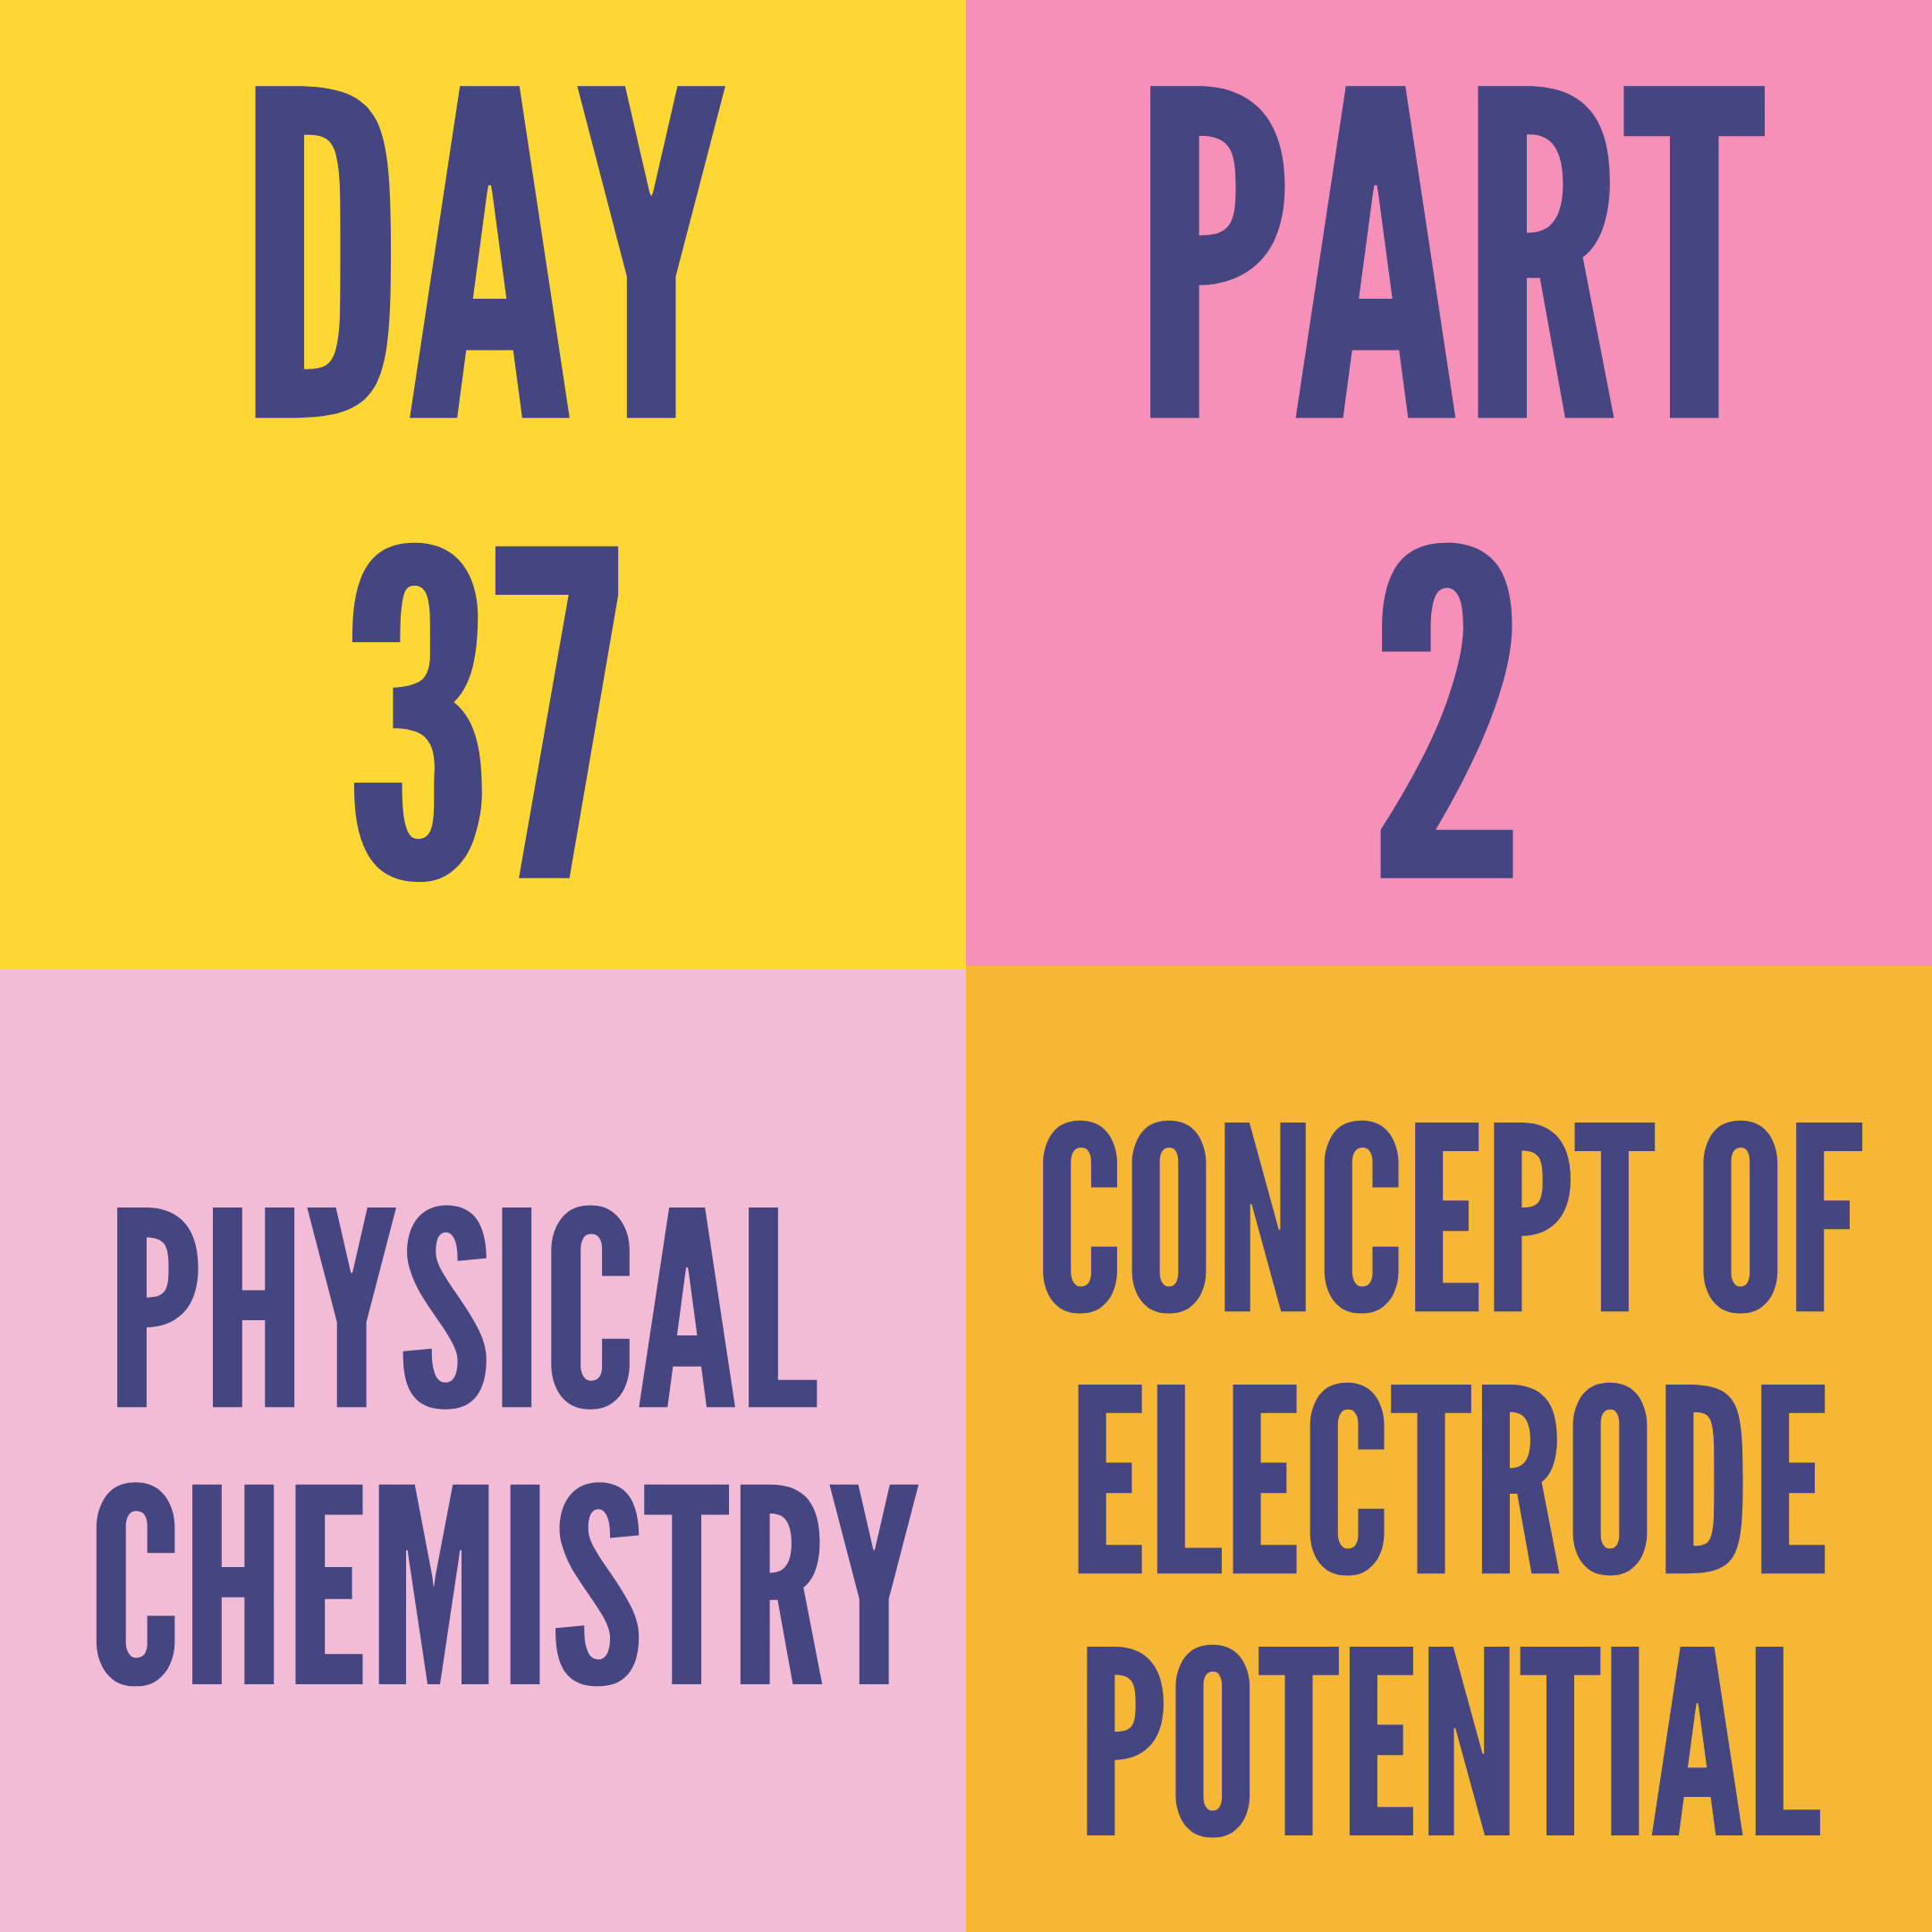 DAY-37 PART-2 CONCEPT OF ELECTRODE POTENTIAL